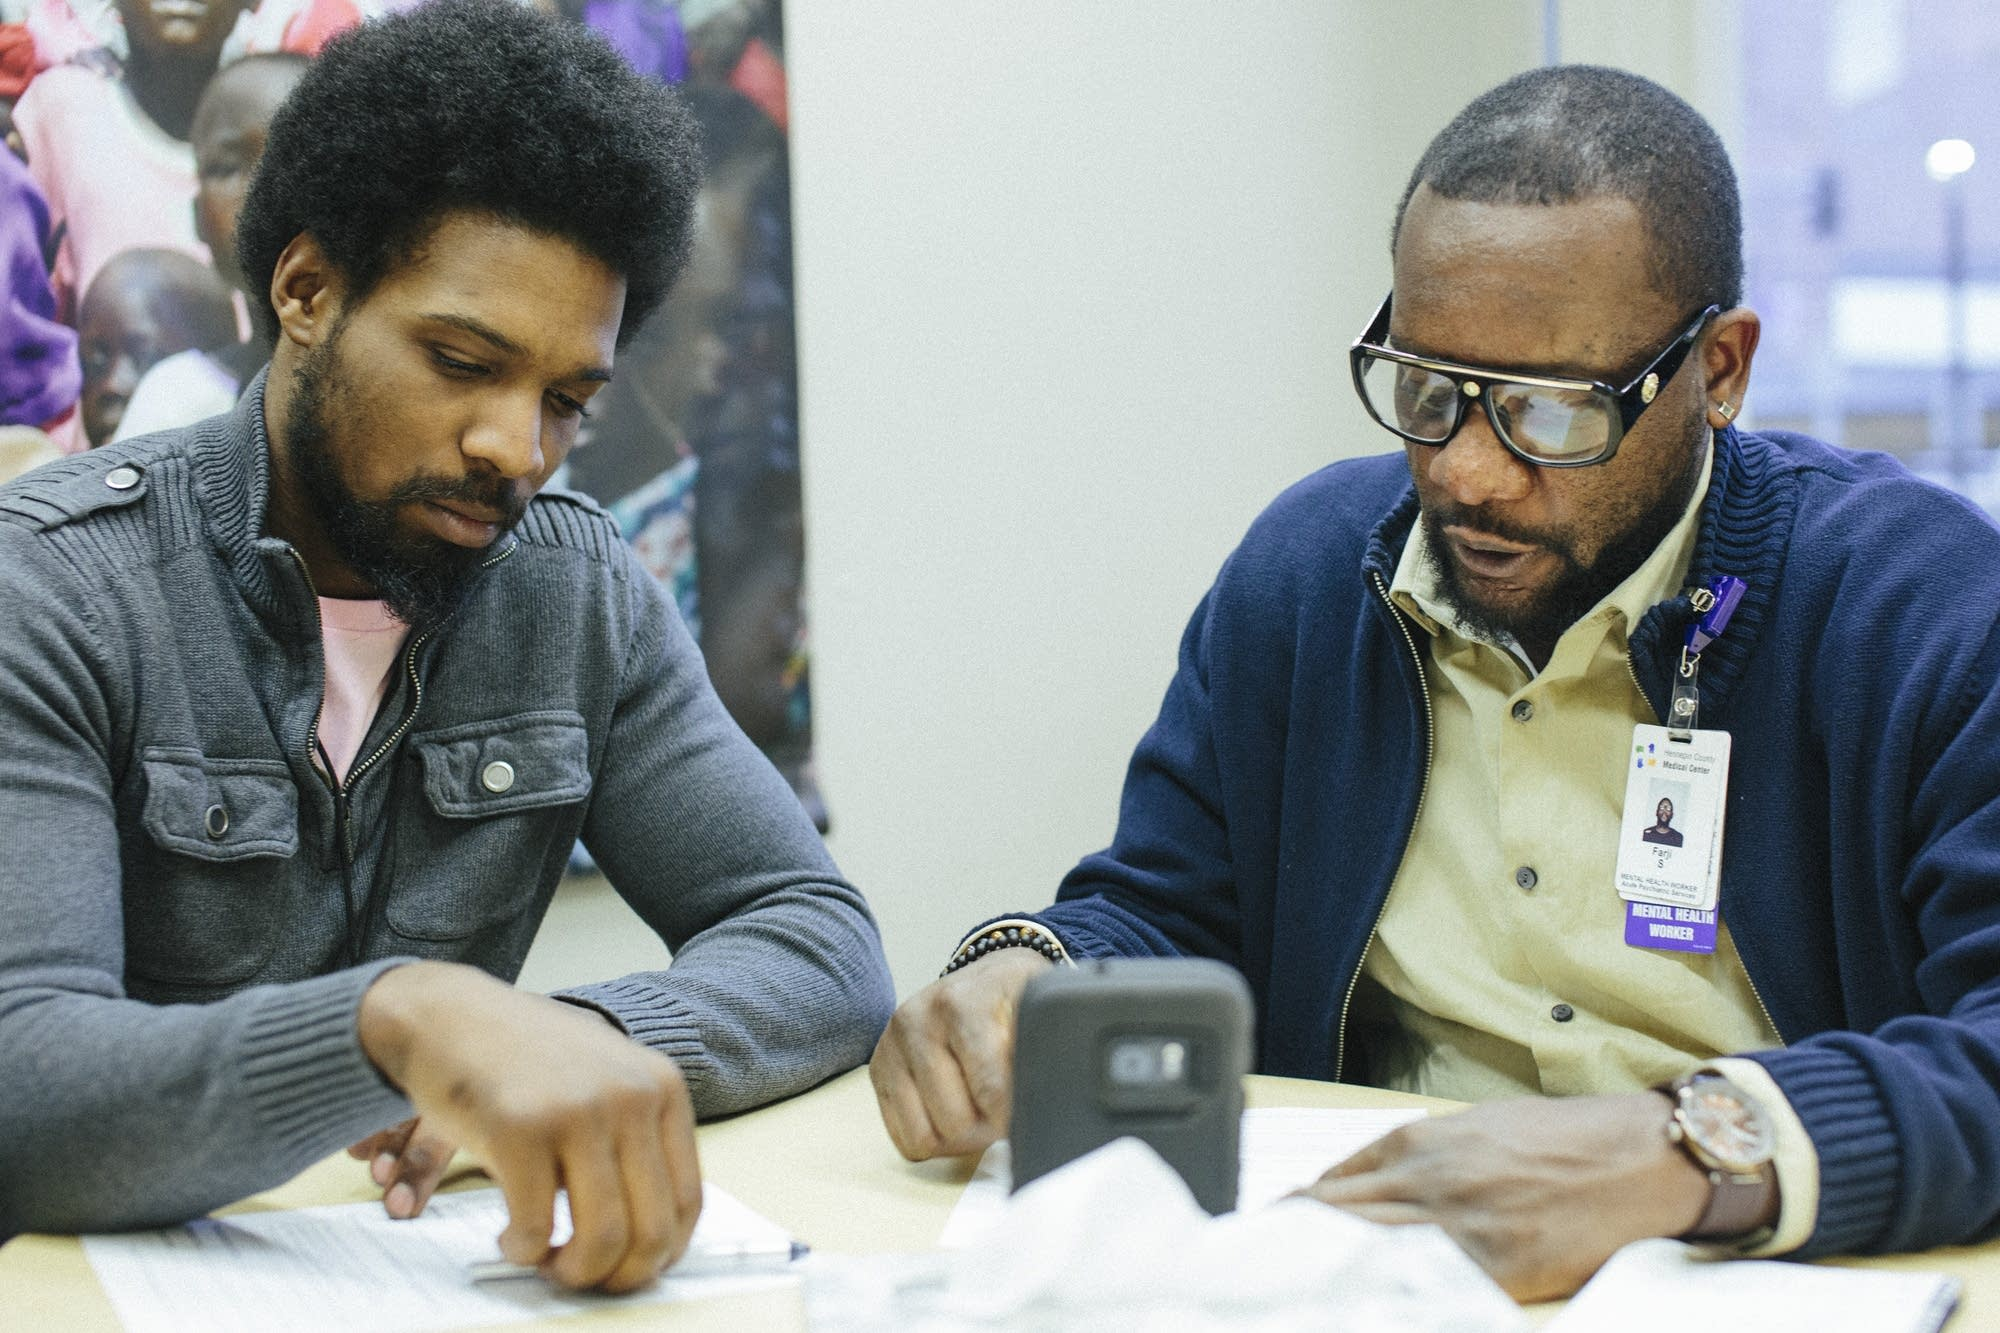 D'Andre Alexander, left, and  Farji Shaheer watch a video.